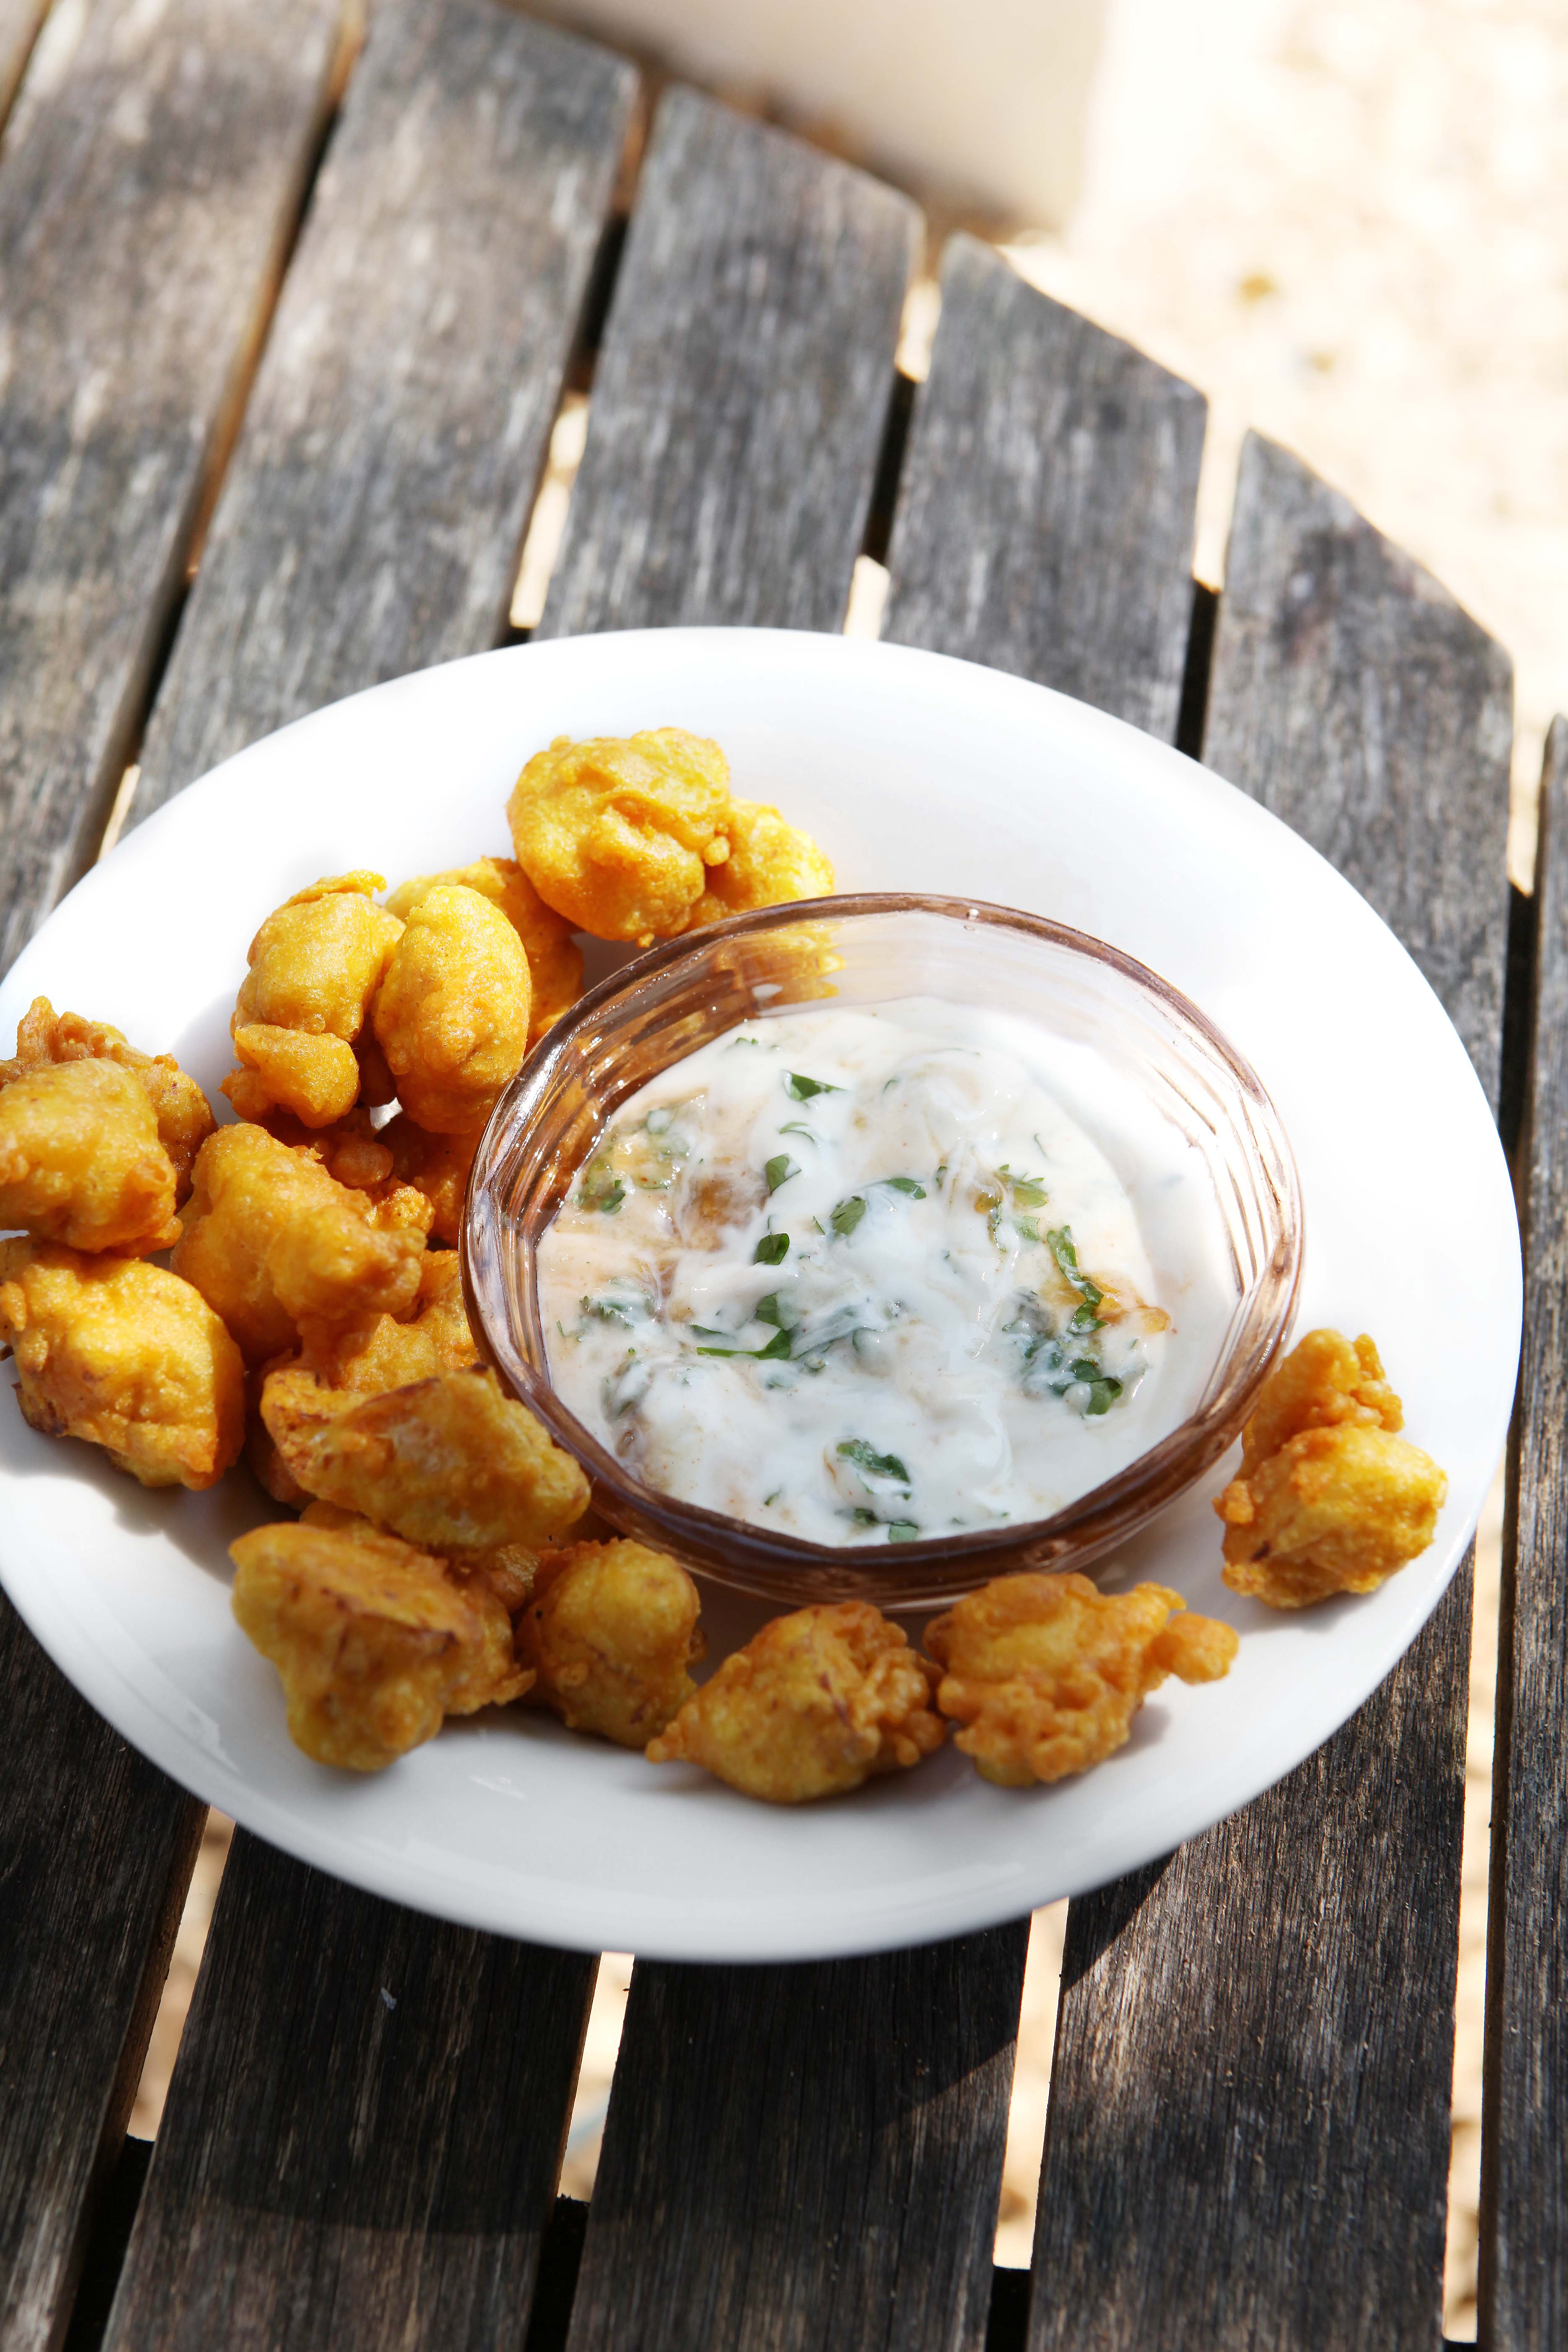 River Cottage's Cauliflower pakoras with tamarind raita